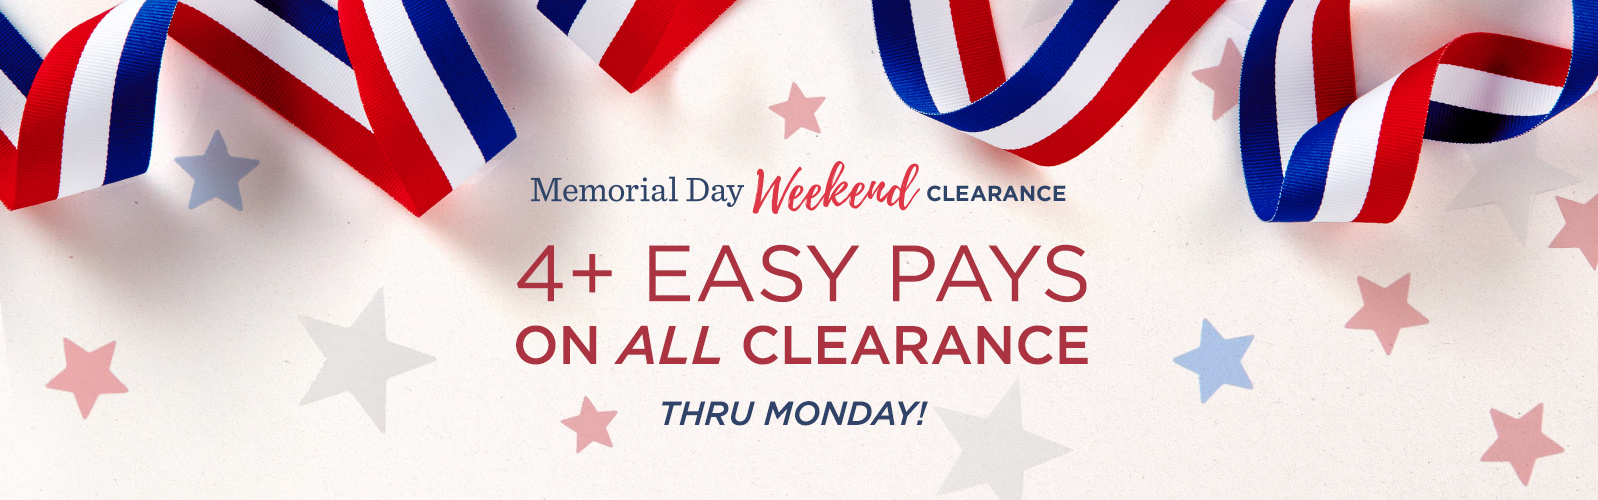 Memorial Day Weekend Clearance. 4+ Easy Pays on ALL Clearance. Thru Monday!